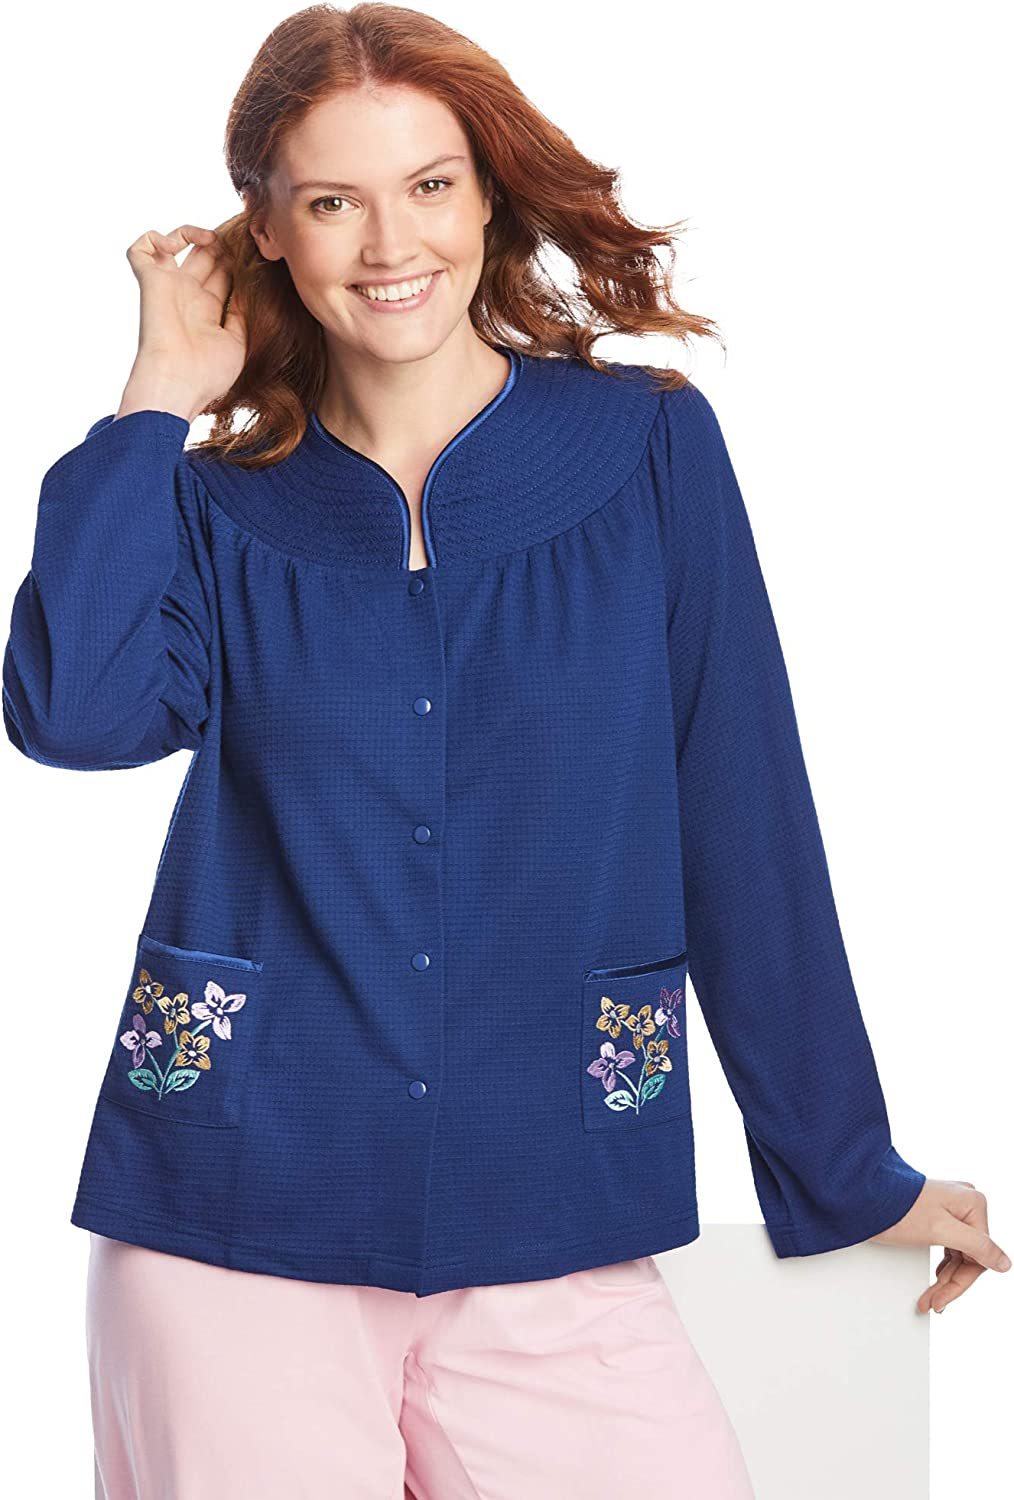 Only Necessities Women's Plus Size Short Waffle Thermal Knit Embroidered Bed Jacket